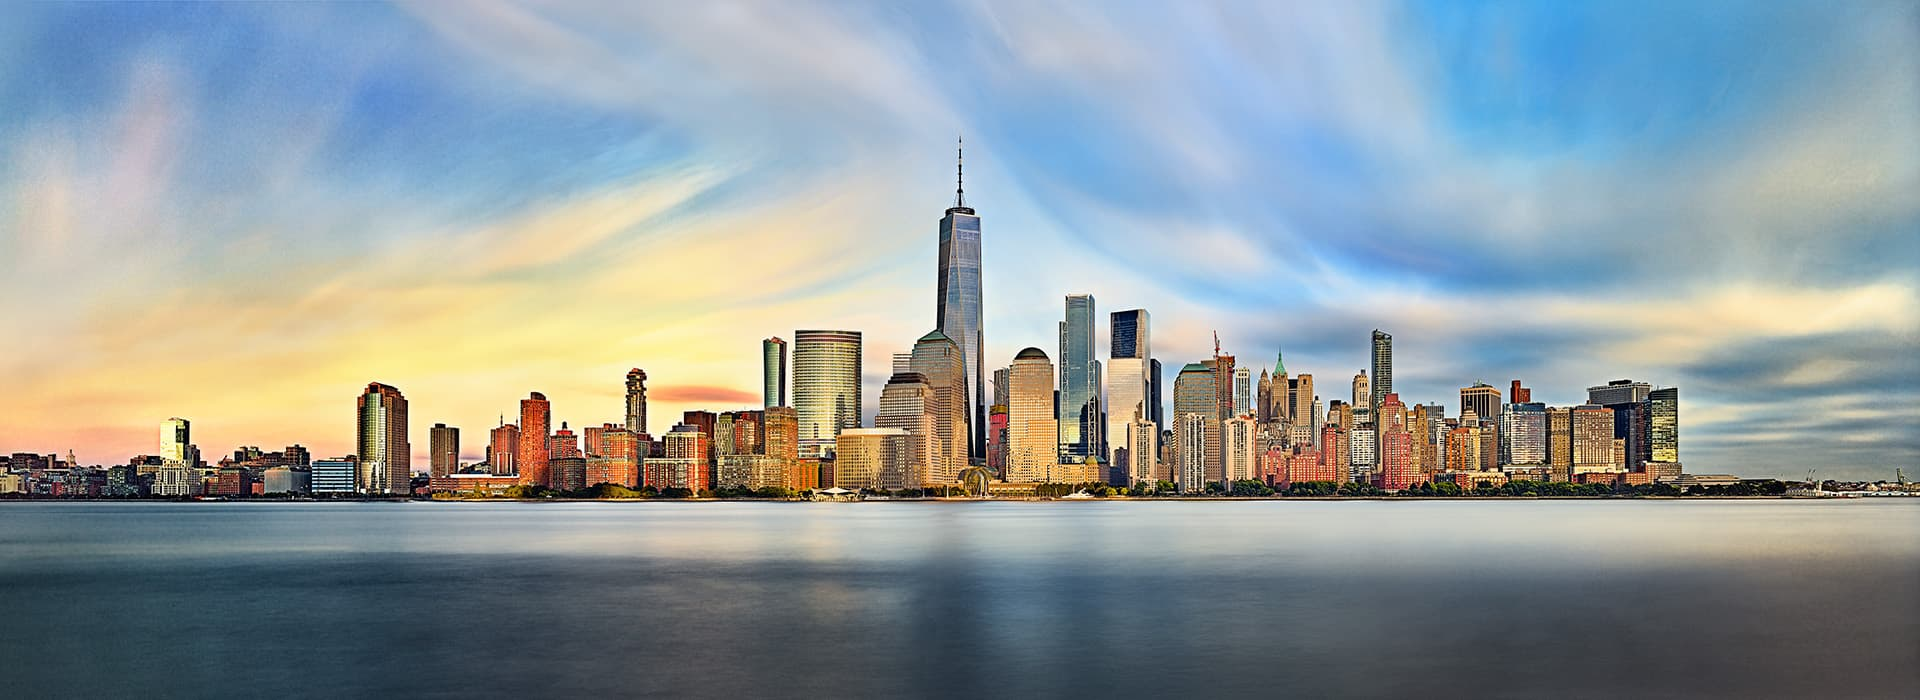 Copyrighted NYC Skyline from Jersey City NJ Copyrighted and Photographed by Philadelphia photographer Bob Graham, Jr, interior and exterior architectural photographer Ambler PA 19002